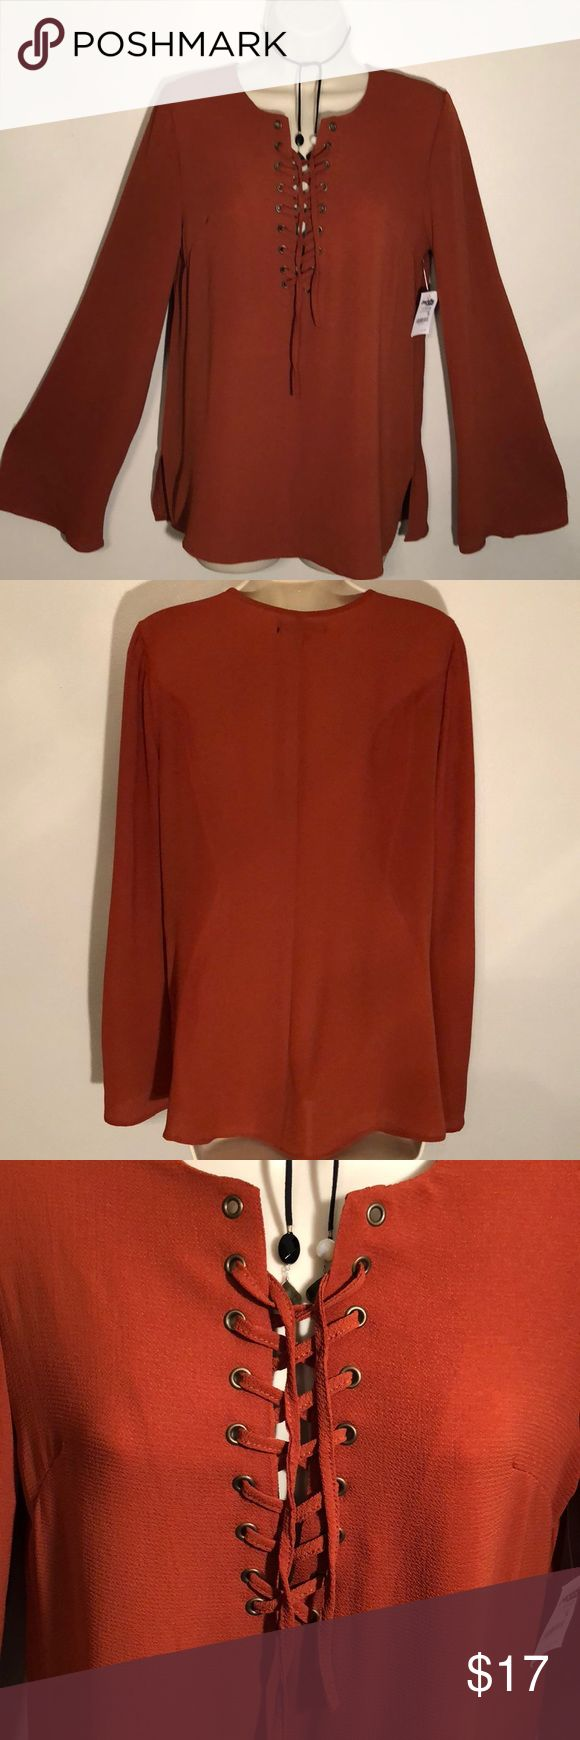 🆕 CHARLOTTE RUSSE MEDIUM PUMPKIN TUNIC TOP Charlotte Russe Pumpkin Tunic➖Size Medium➖Lace Tied Top➖Bell Sleeves➖Creped Polyester➖Great with Jeans or Leggings!!➖Necklace not included but available for sale in my closet 😊 Charlotte Russe Tops Tunics